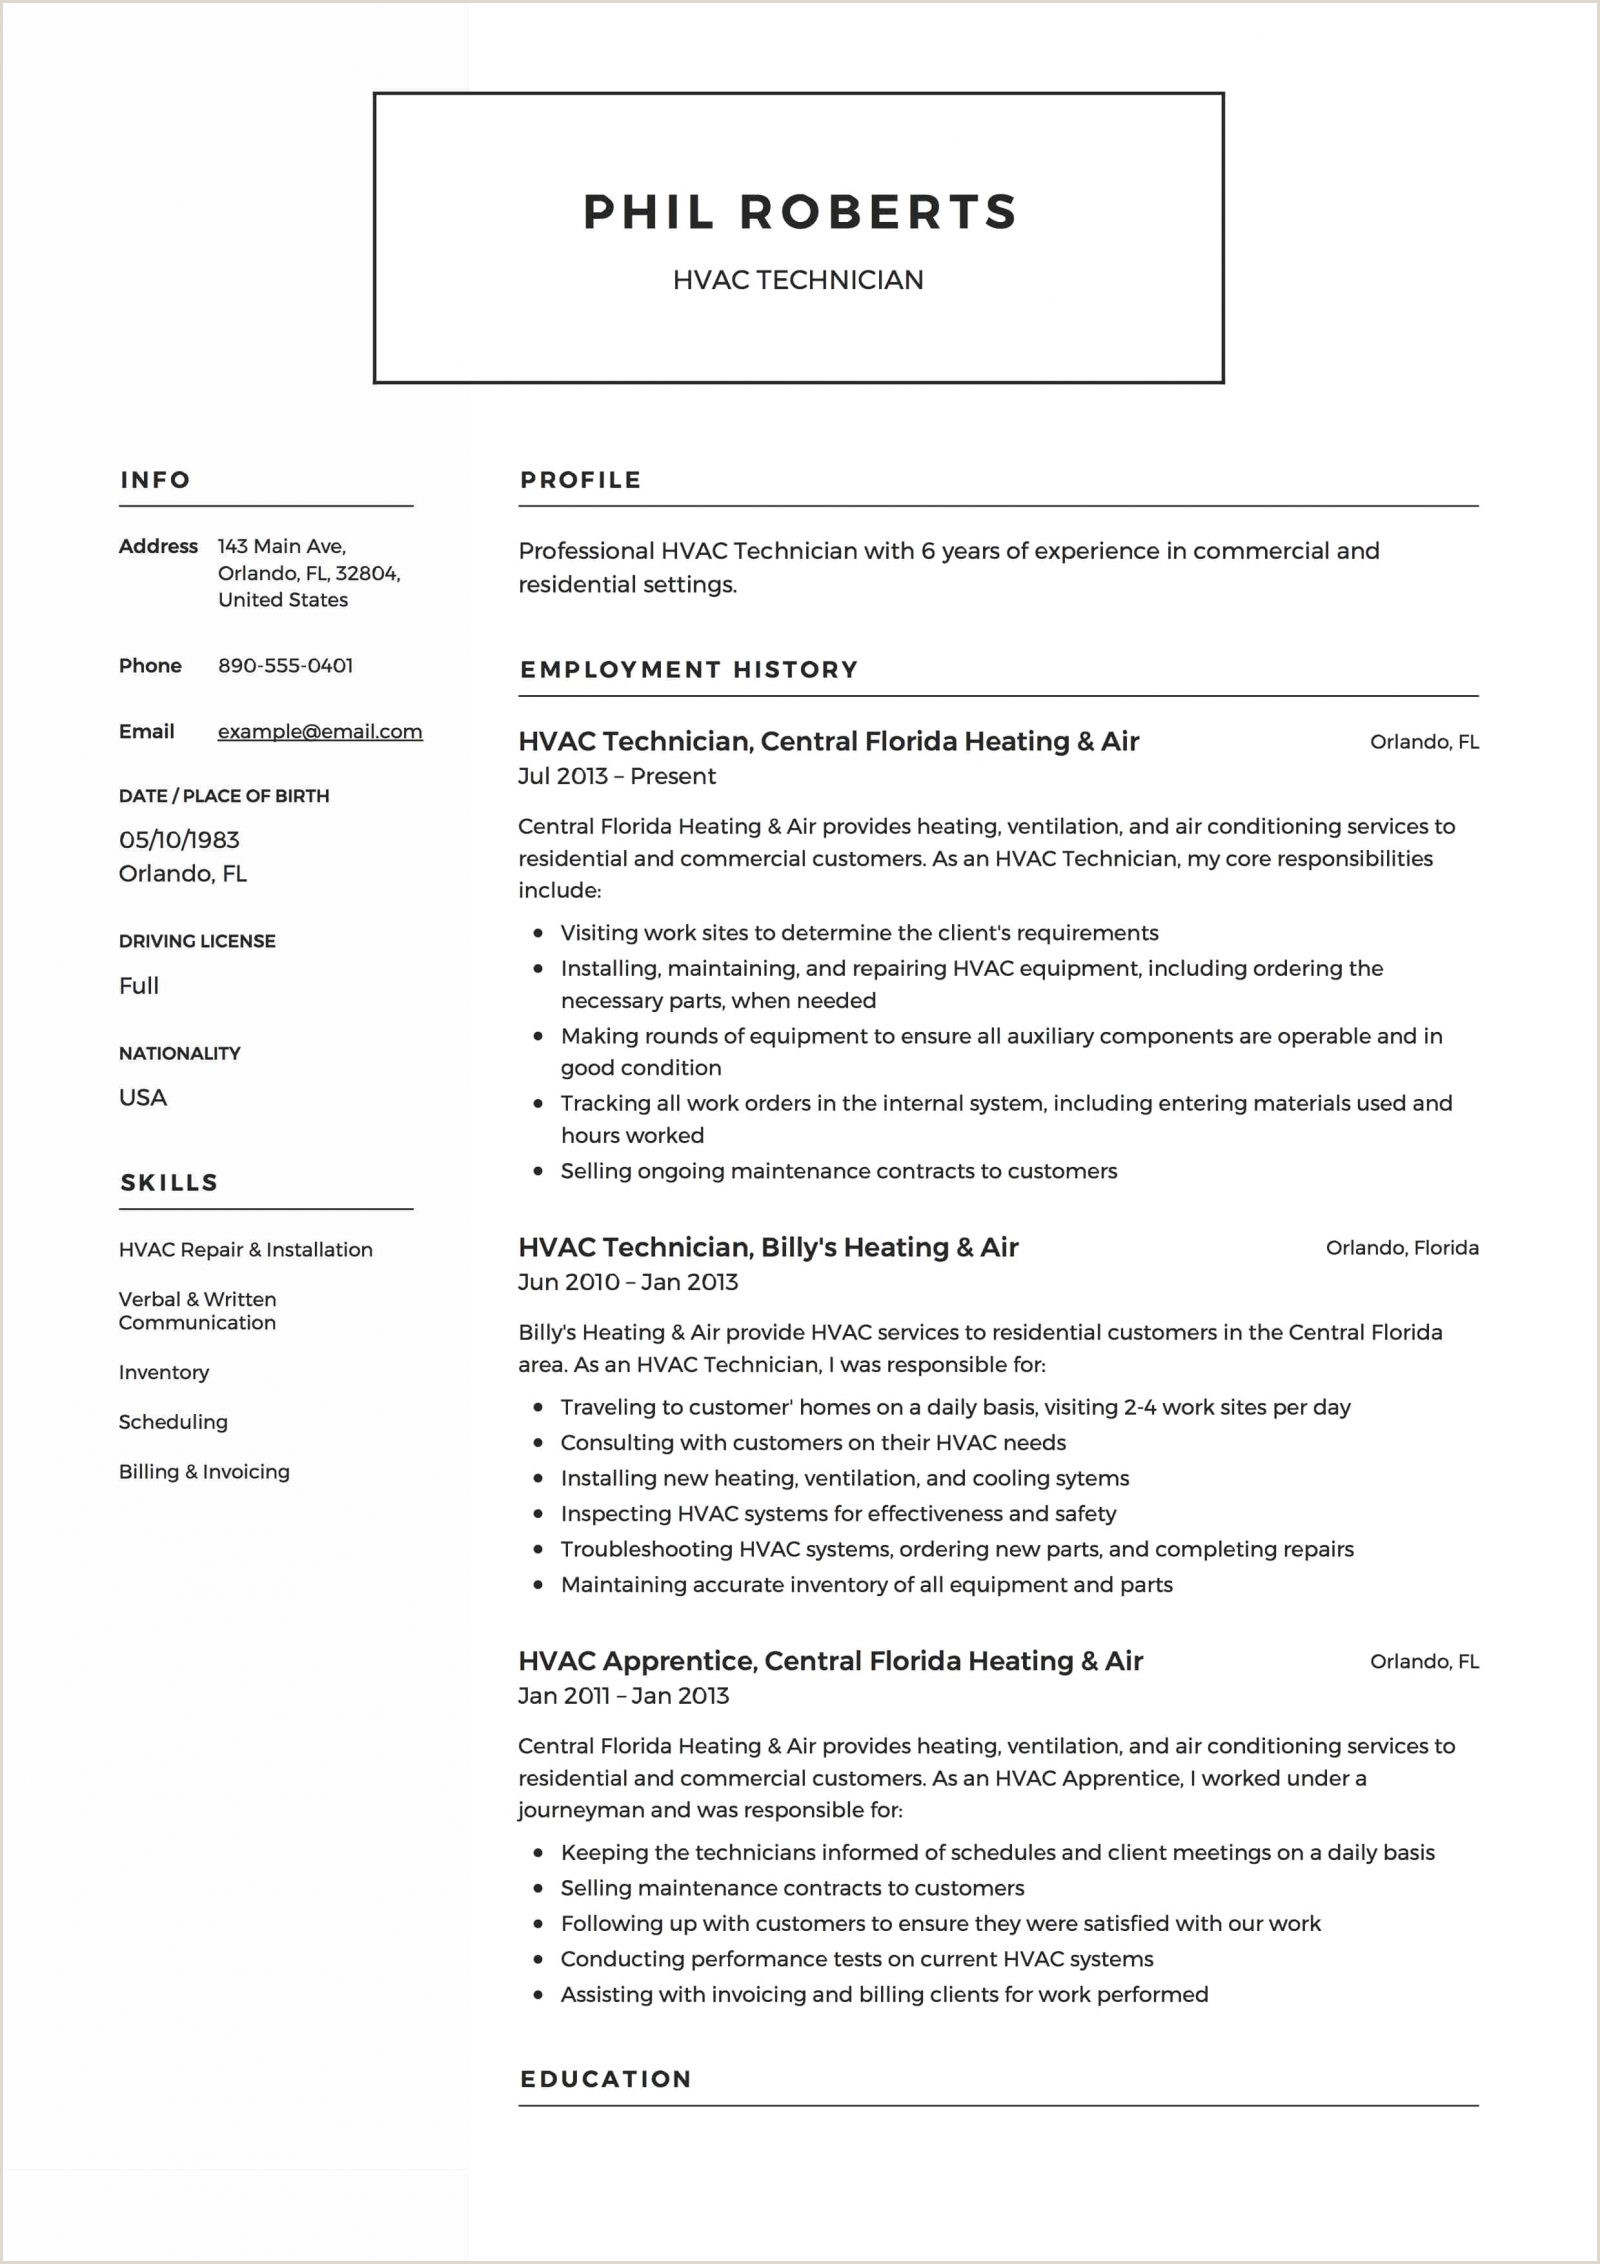 Resume Template for Hvac Technician Galerie Von Hvac Resume Templates theremedy Us Download